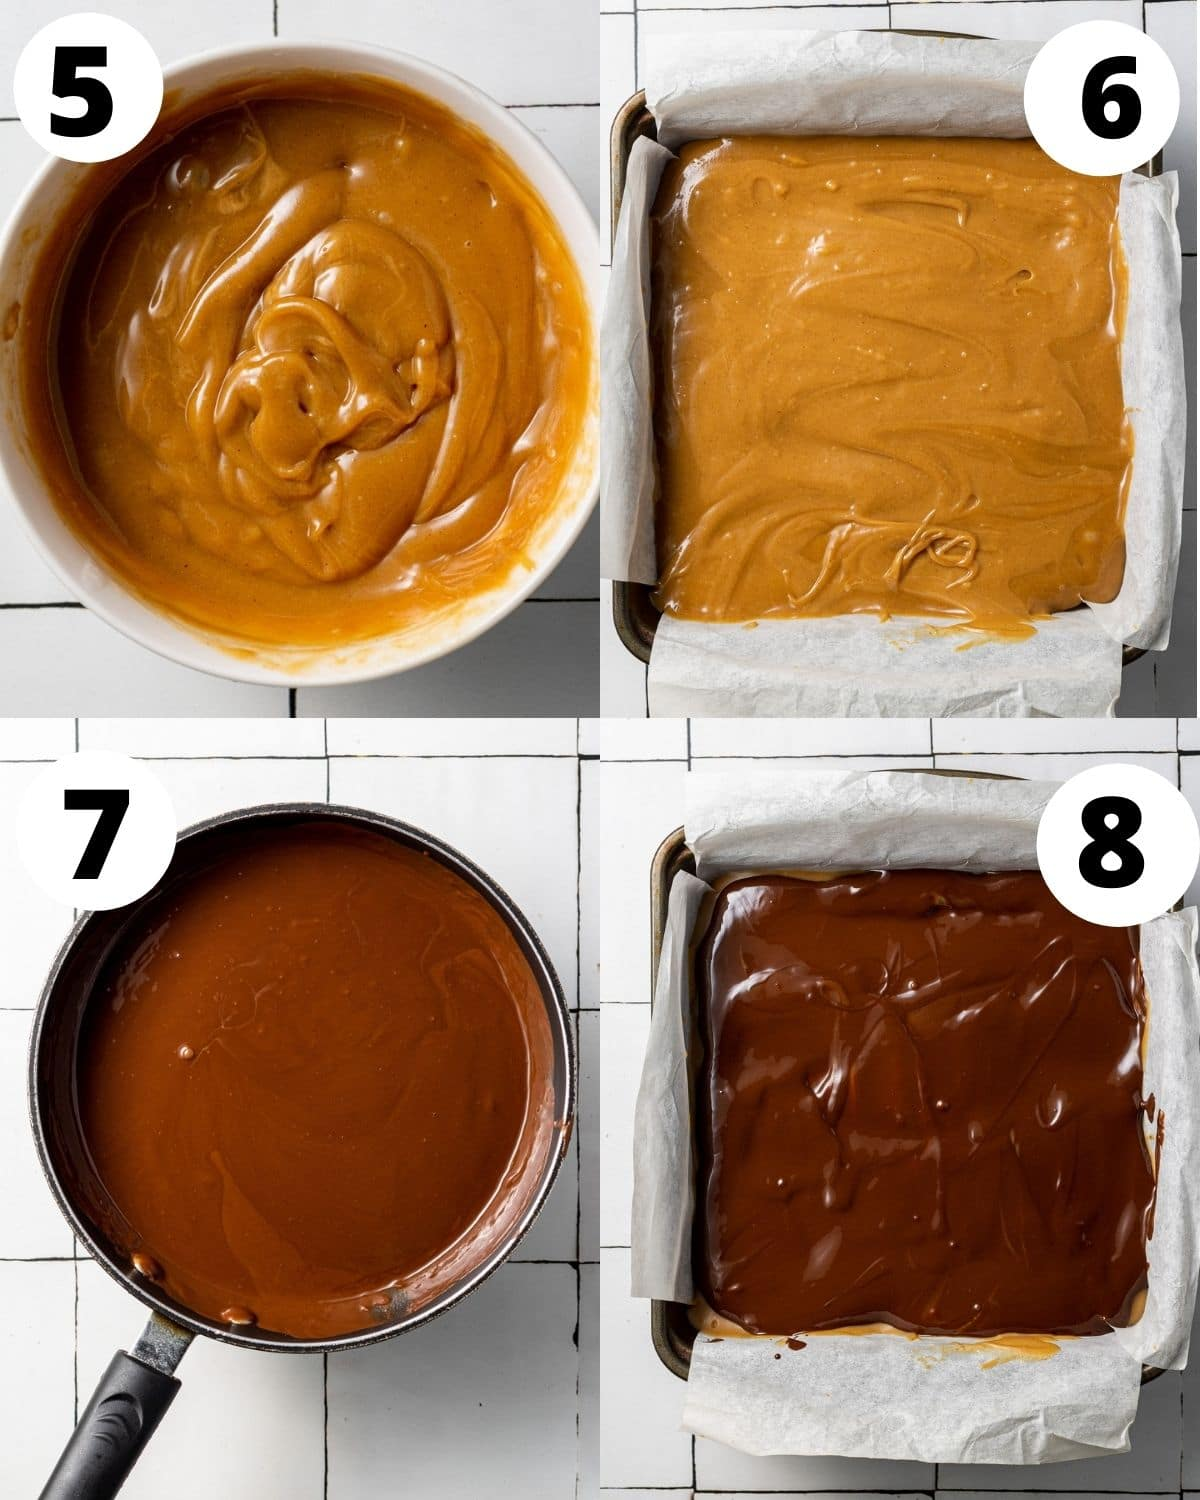 instructions showing step by step how to make vegan millionaire shortbread